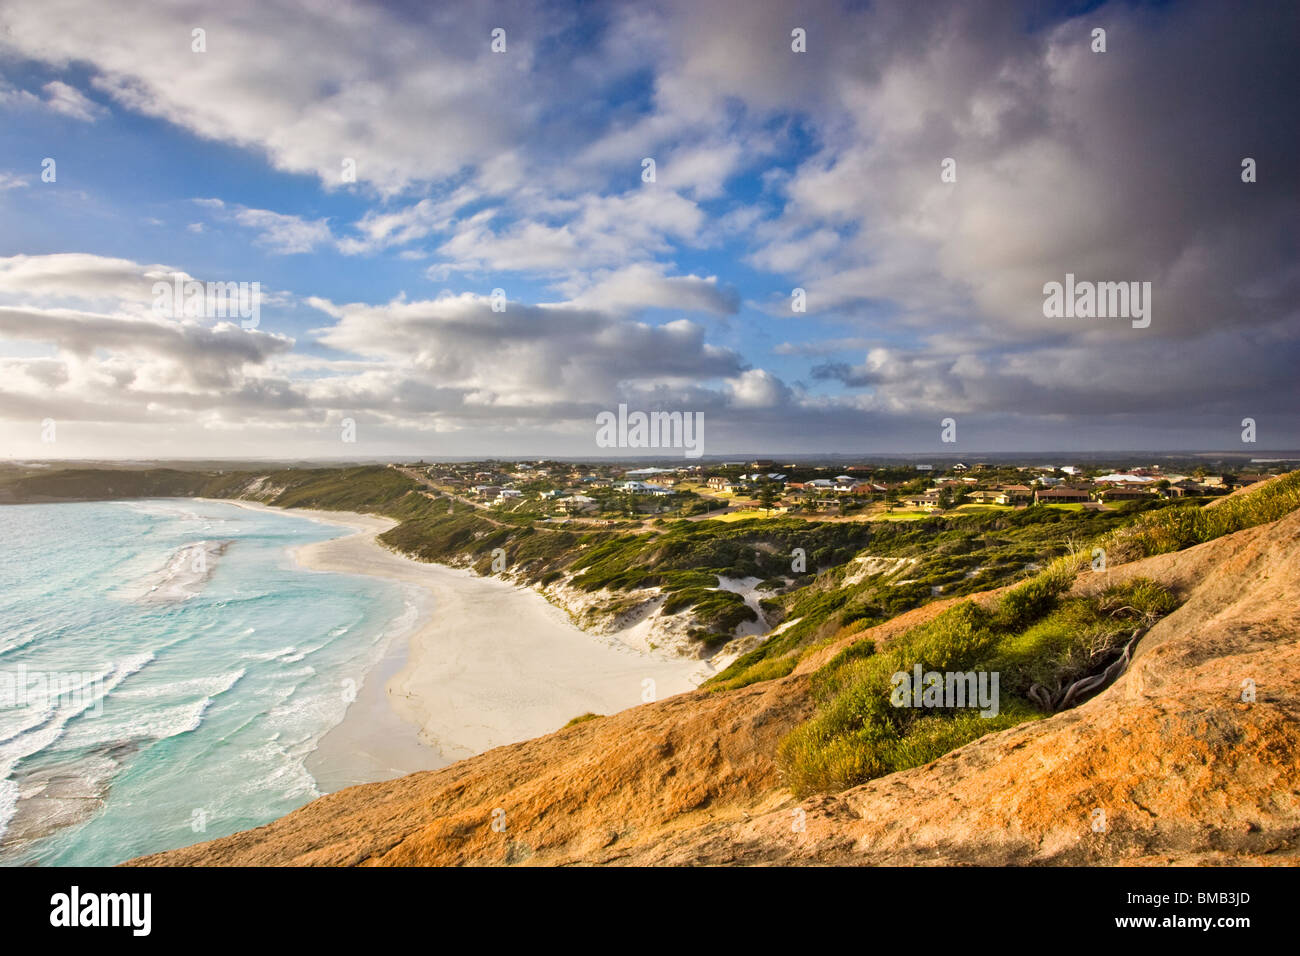 Large houses in an affluent coastal suburb overlooking West Beach in Esperance, Western Australia - Stock Image